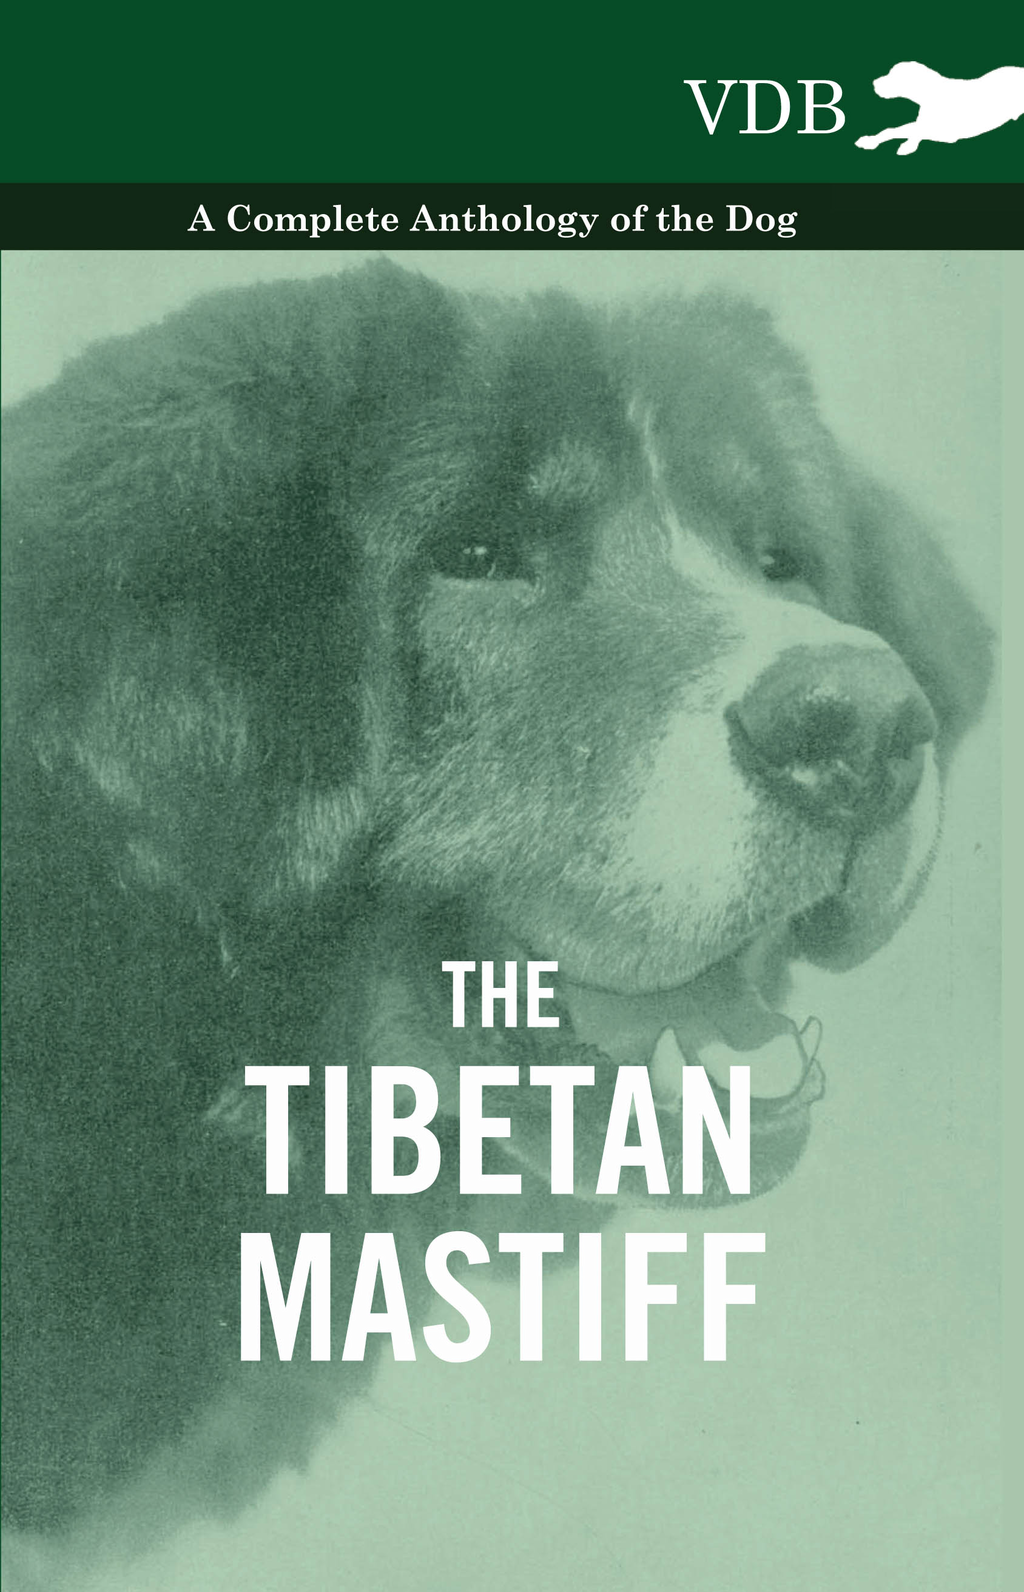 The Tibetan Mastiff - A Complete Anthology of the Dog